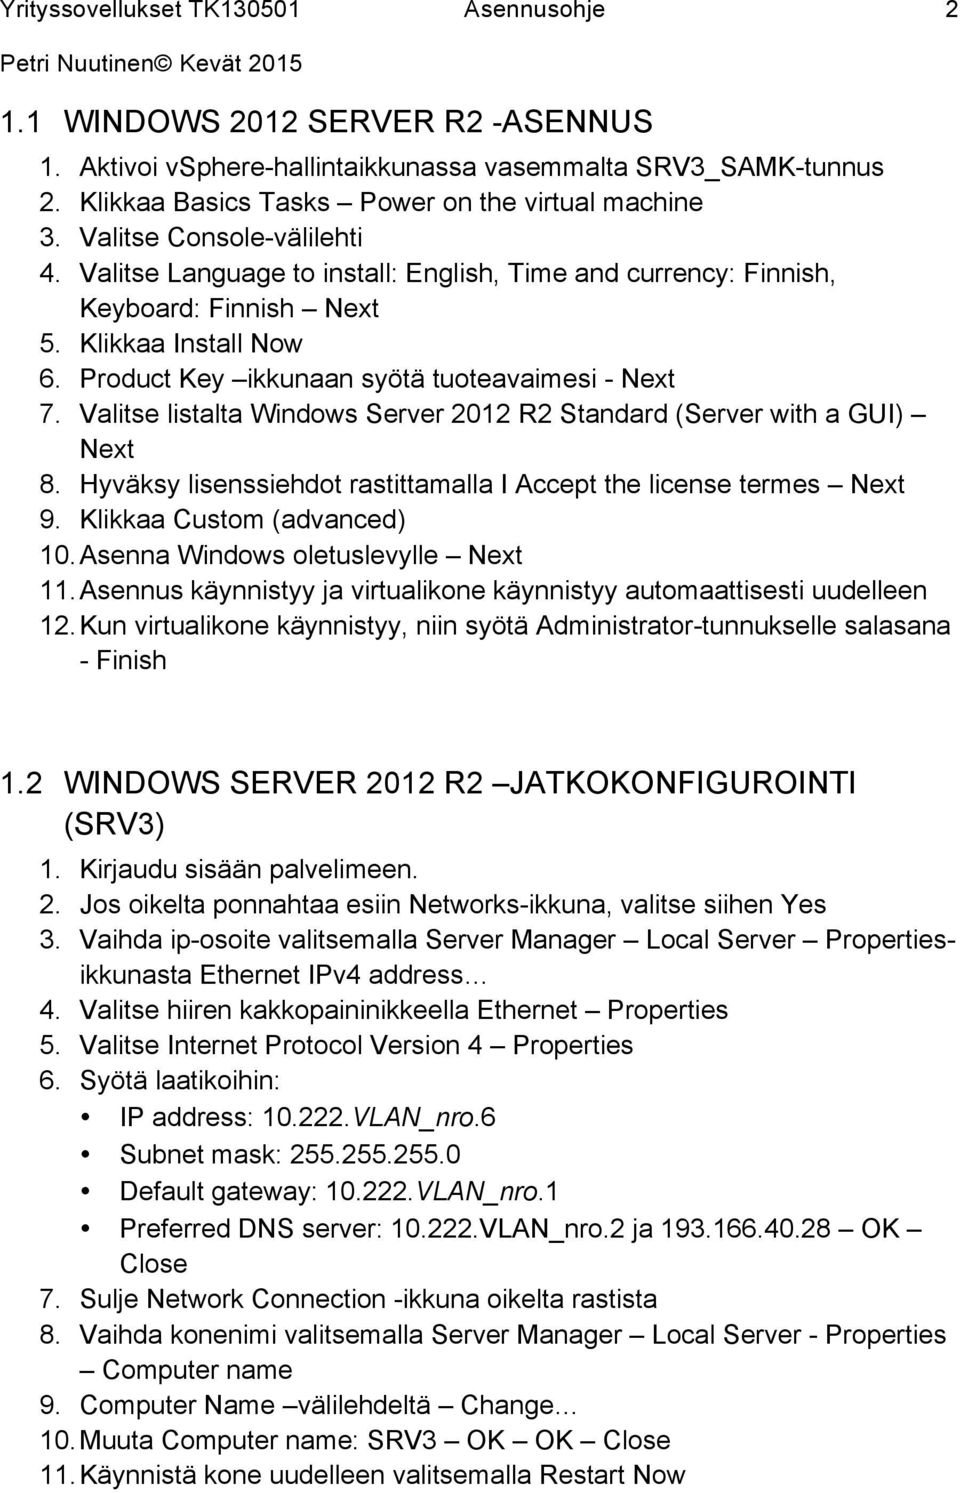 Valitse listalta Windows Server 2012 R2 Standard (Server with a GUI) Next 8. Hyväksy lisenssiehdot rastittamalla I Accept the license termes Next 9. Klikkaa Custom (advanced) 10.